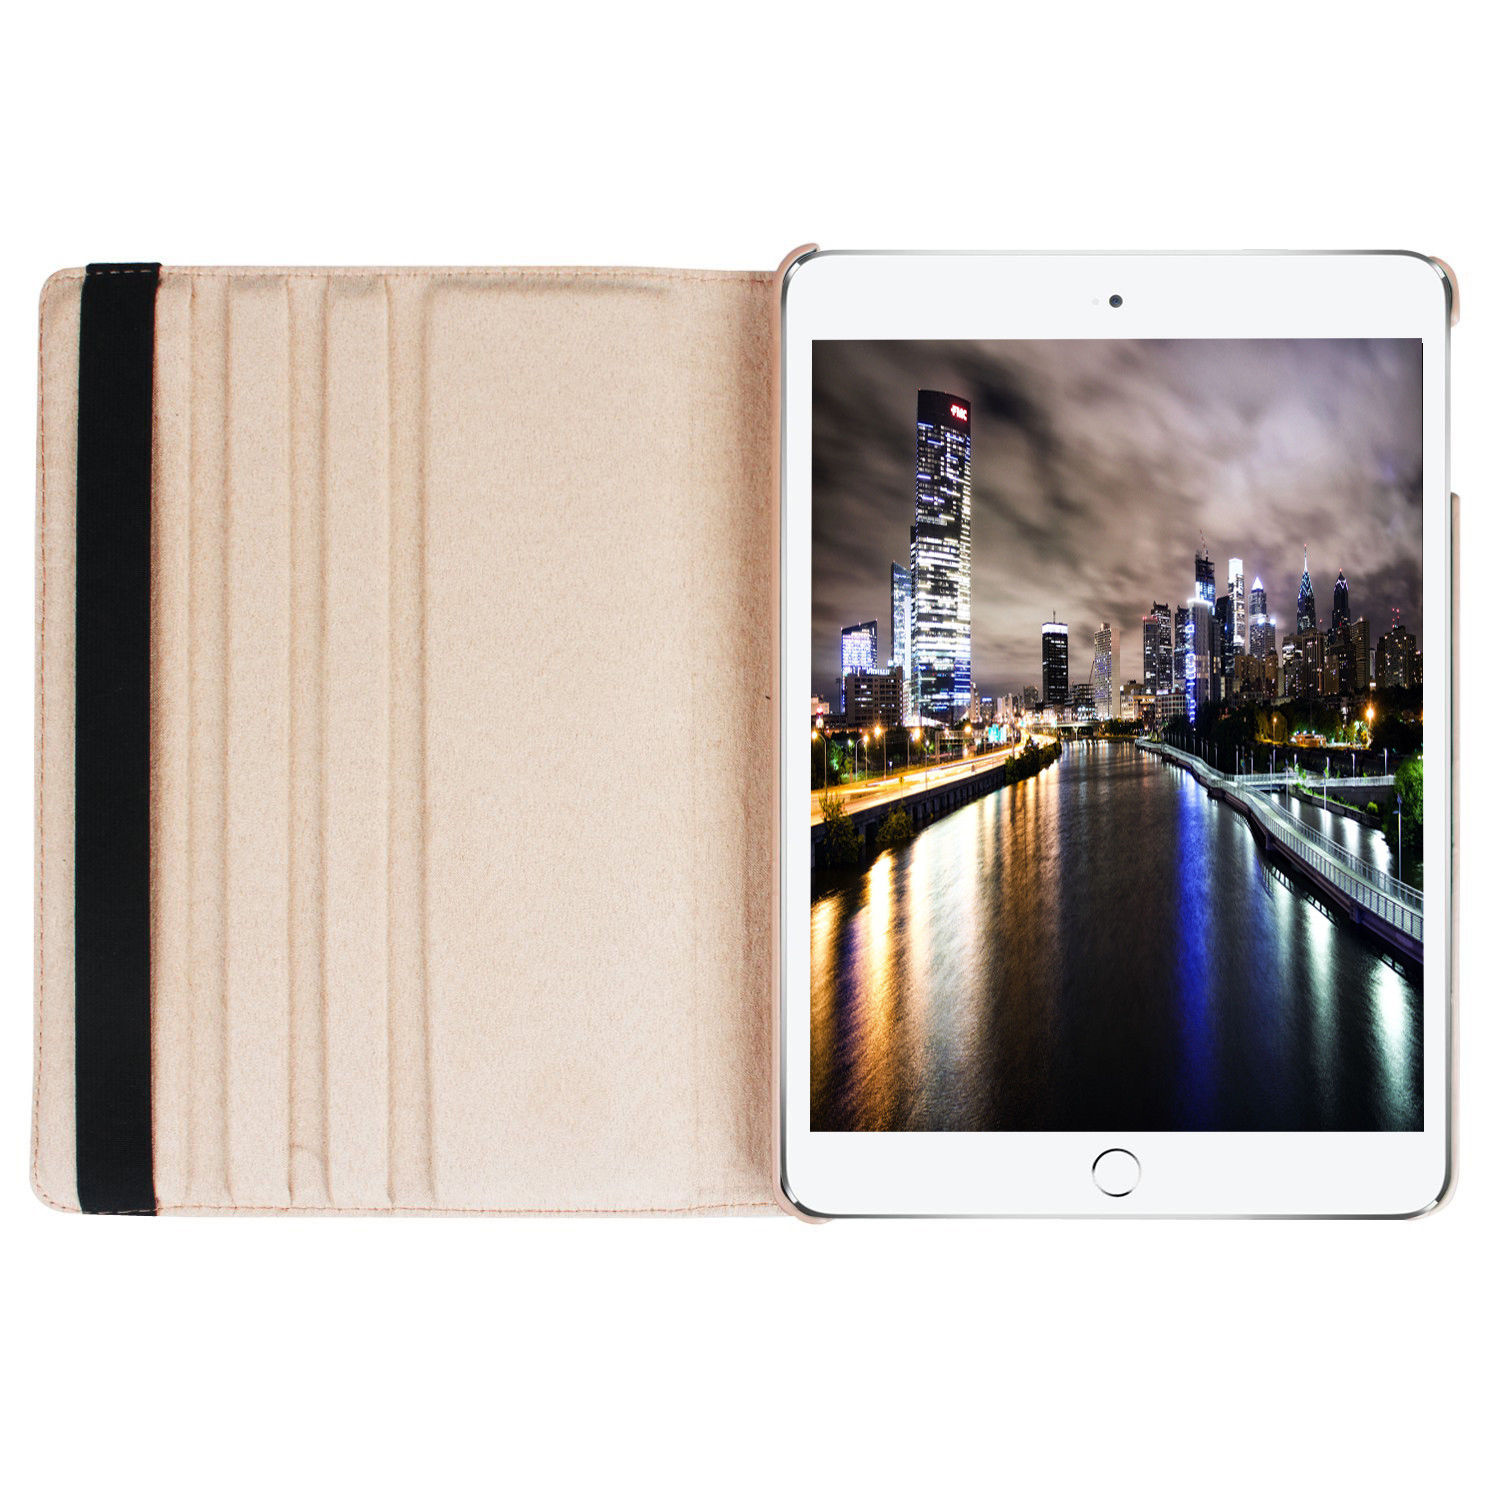 Custodia-per-Apple-iPad-Pro-2017-iPad-Air-3-10-5-Smart-Cover-Case-Custodia-Protettiva miniatura 97